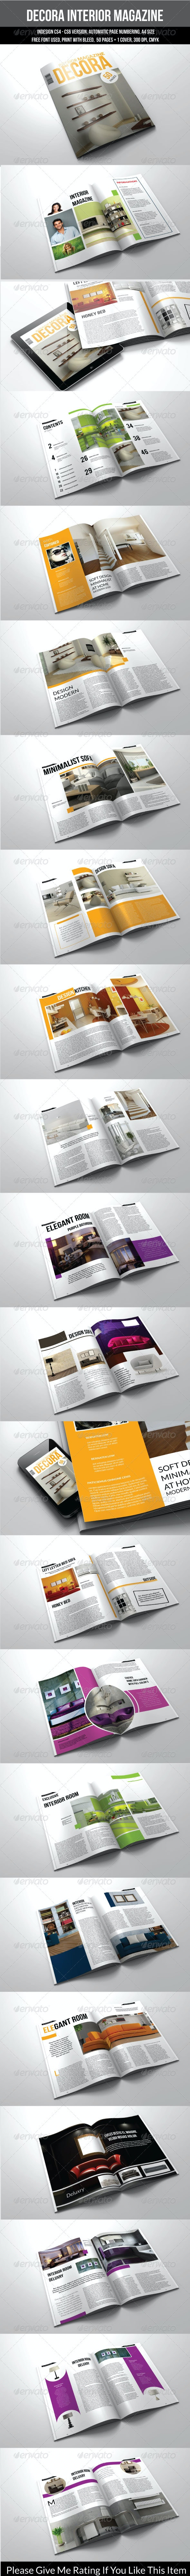 50 Pages A4 Indesign Magazine Template - Magazines Print Templates